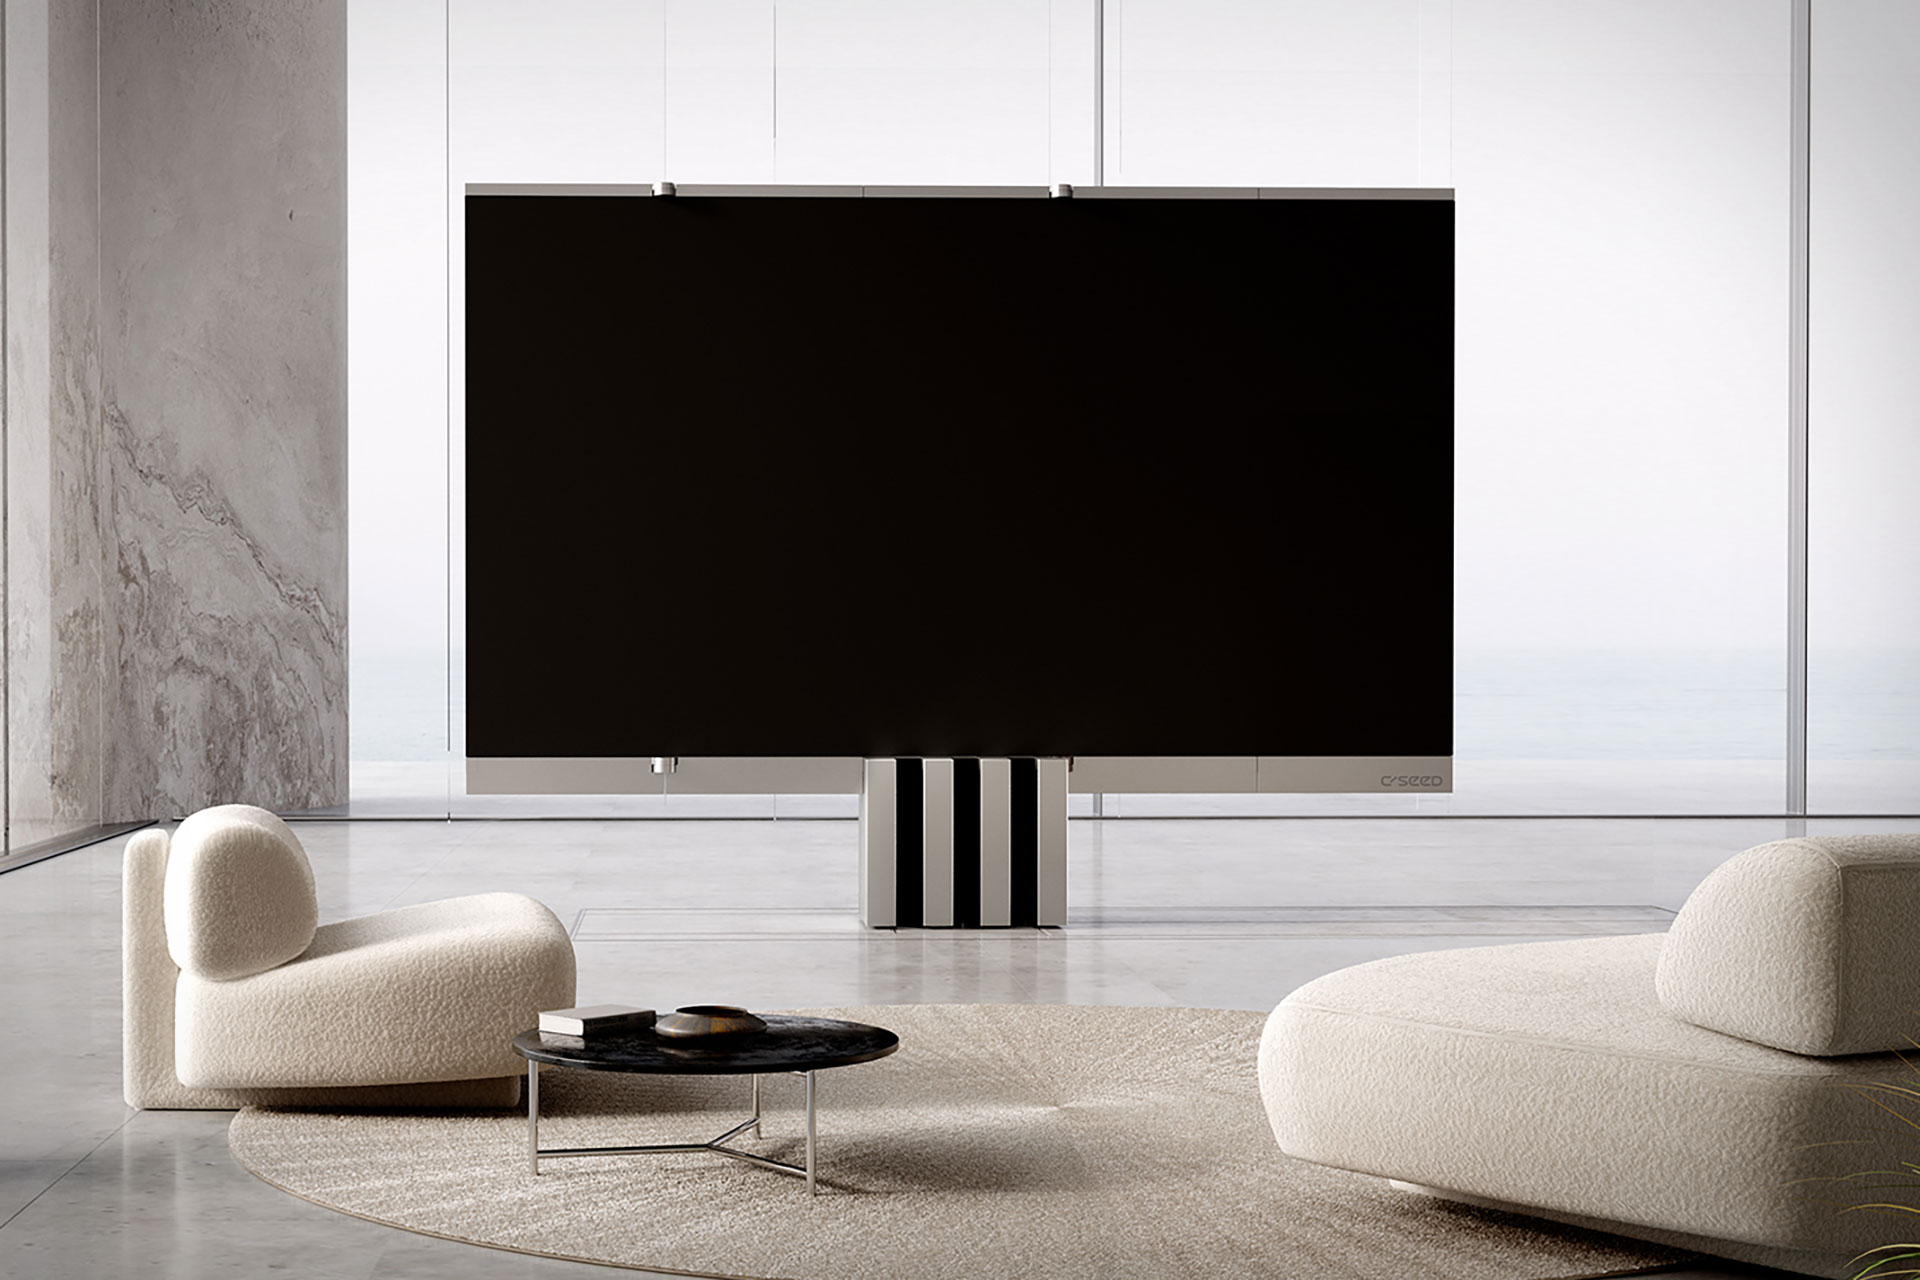 C-Seed M1 Foldable MicroLED TV